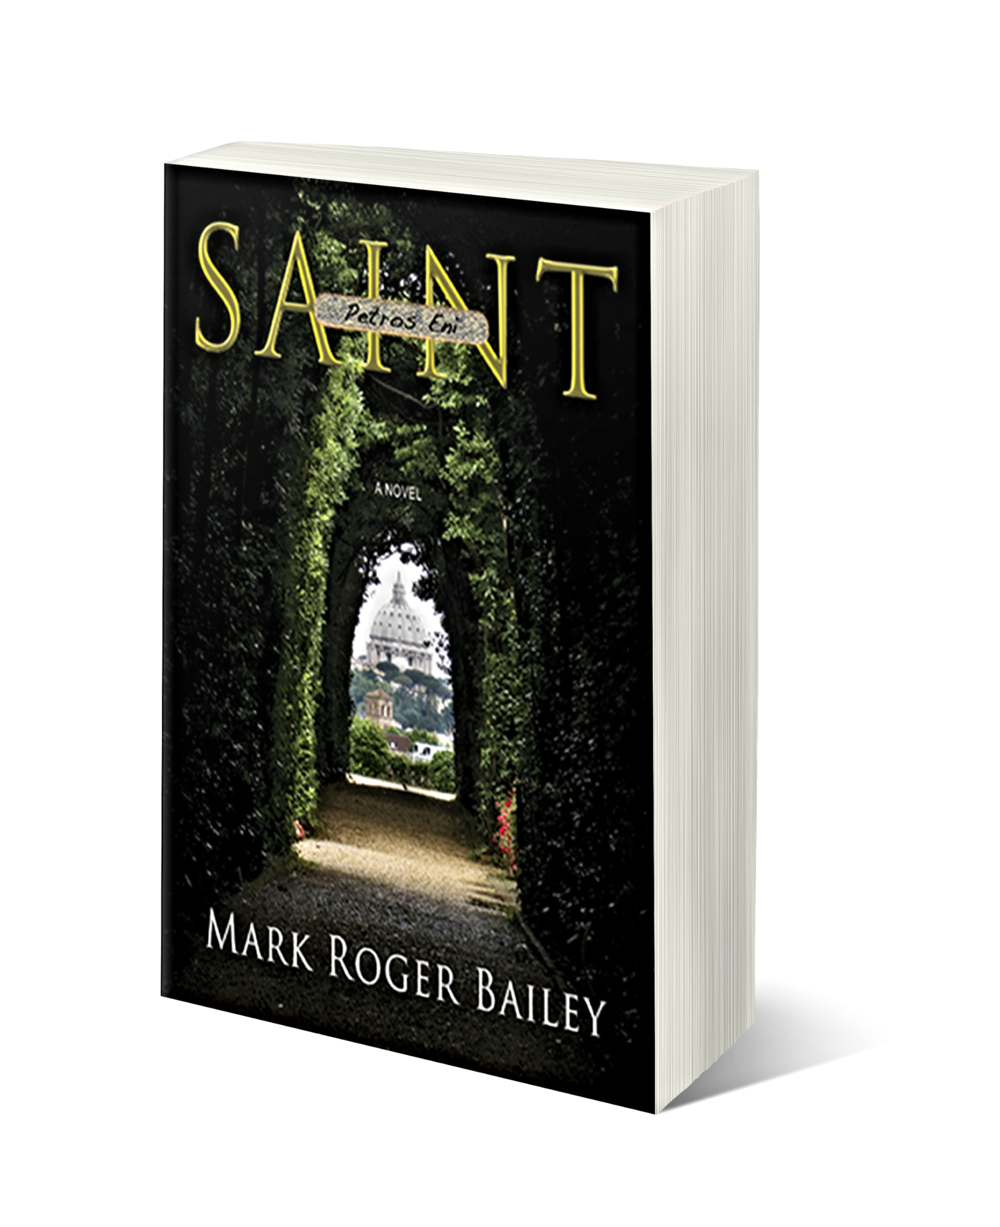 SAINT - The timeless novel